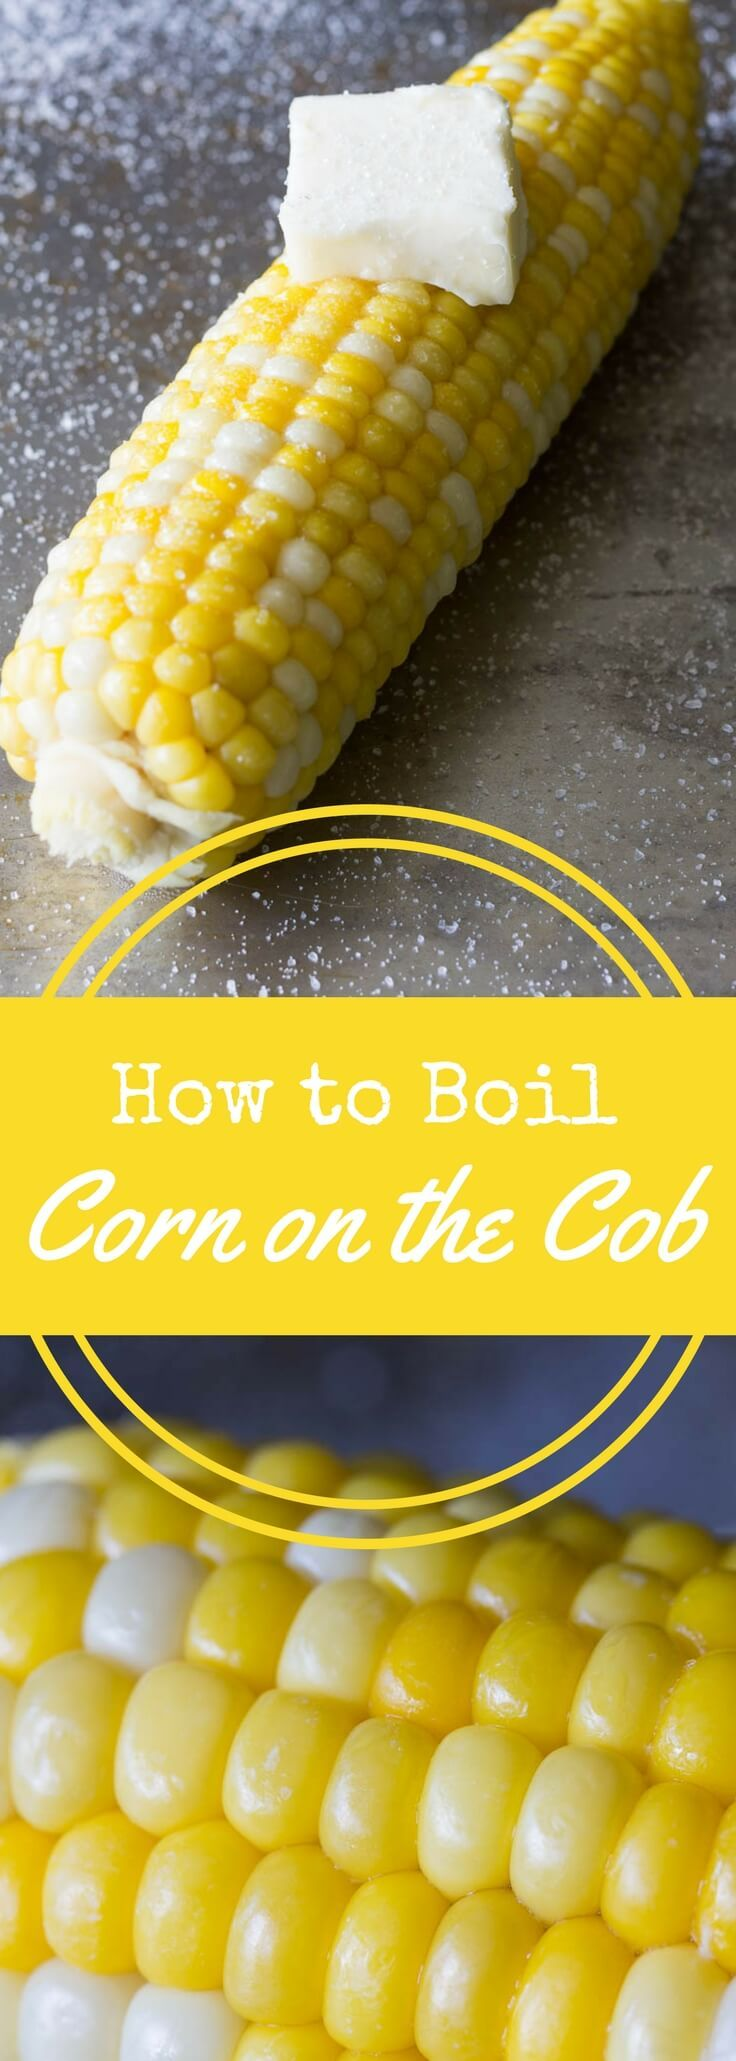 Get the exact cooking time for boiled corn on the cob.  It's foolproof and easy once you learn how to boil corn on the cob! via @recipeforperfec